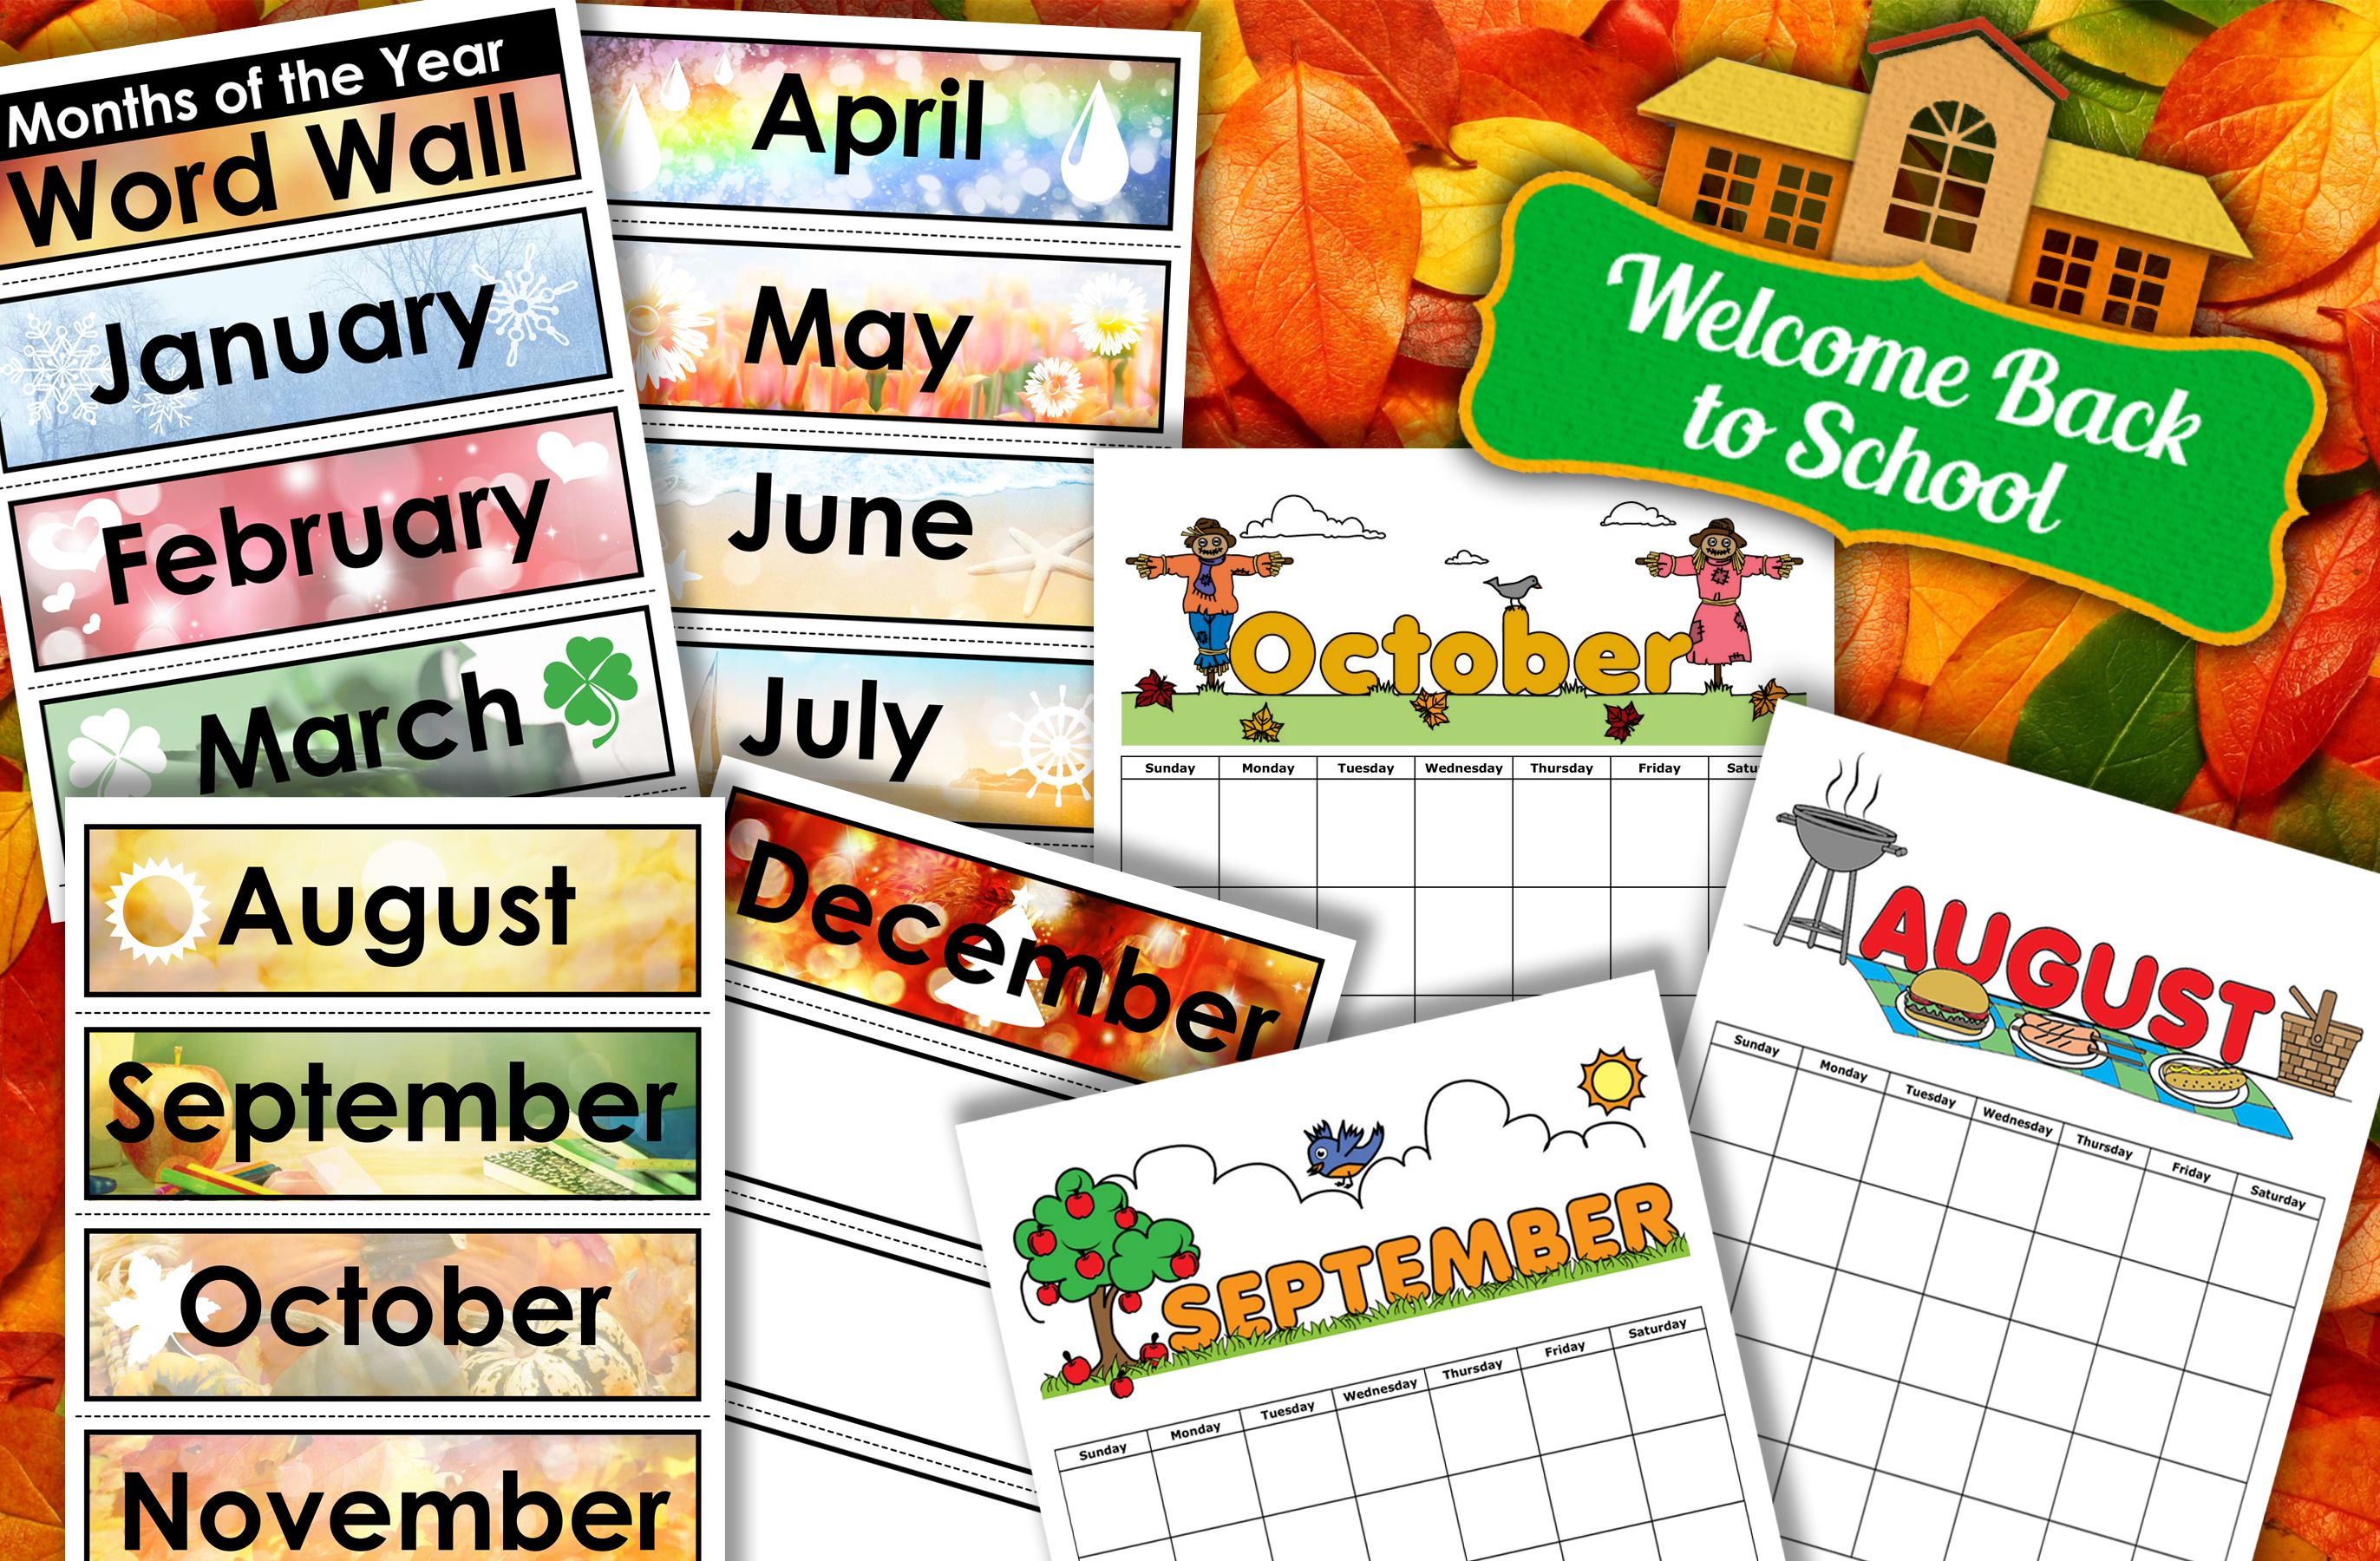 Print Out Fun Seasonal Calendars From